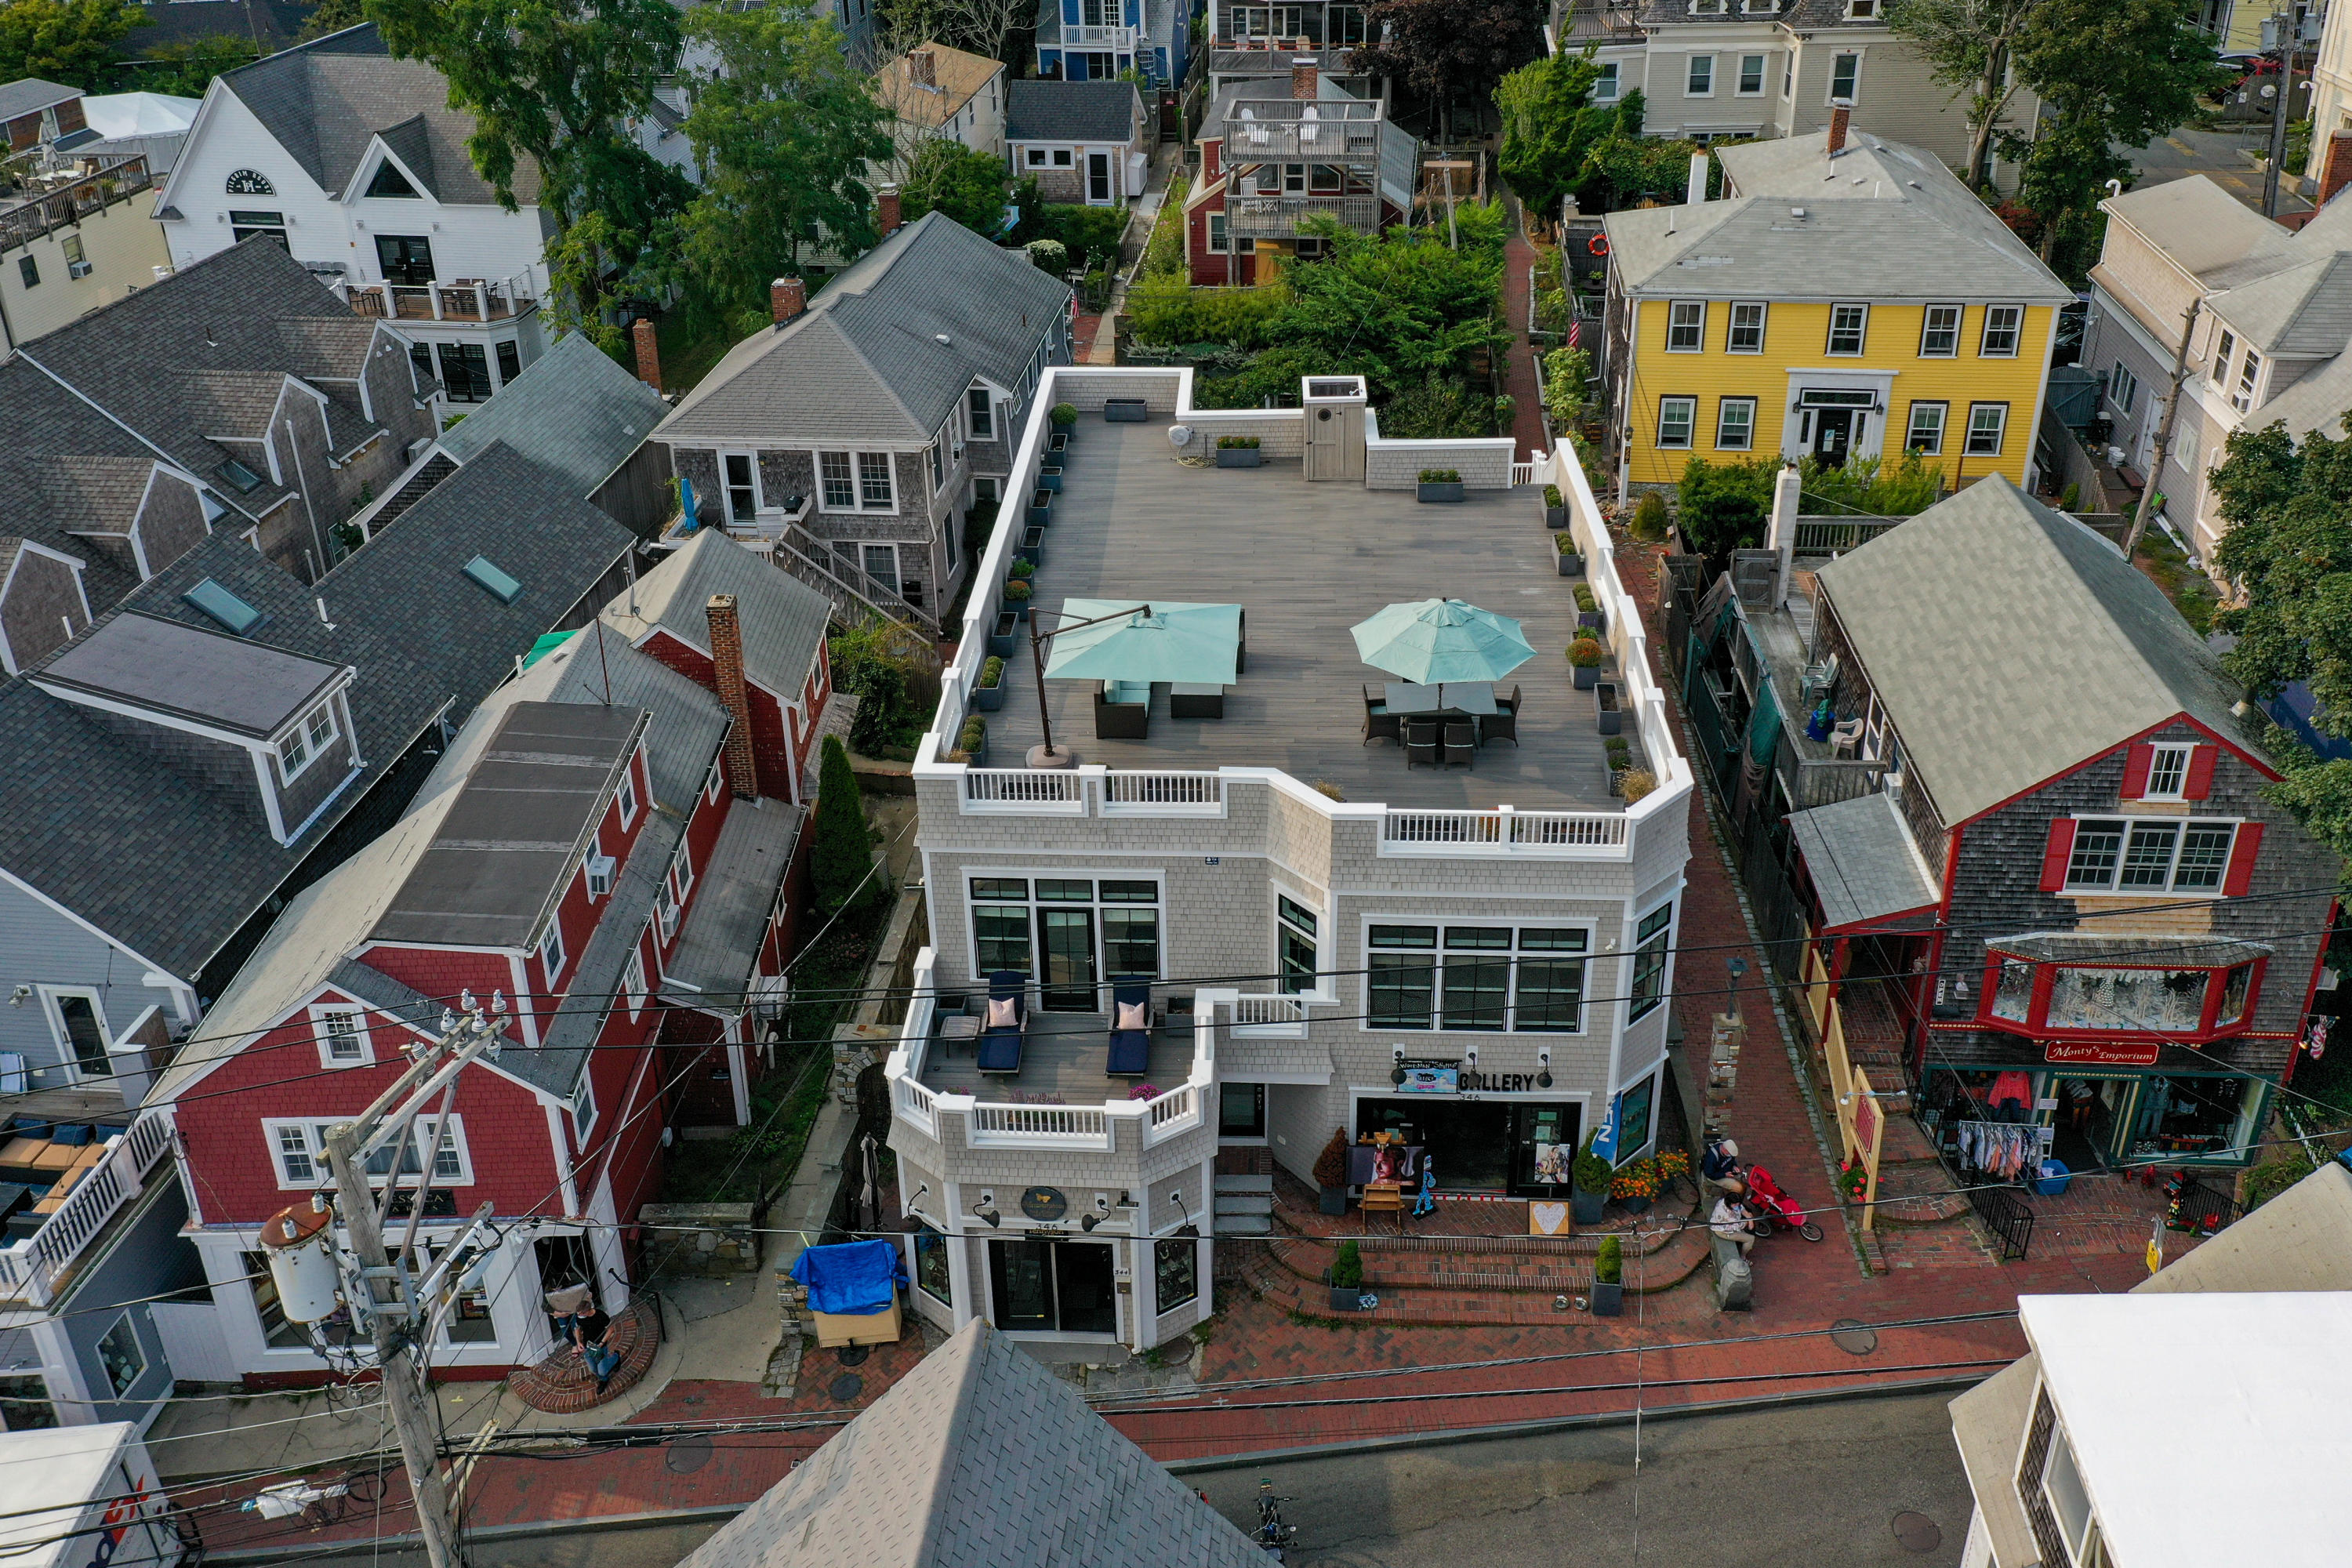 346 Commercial Street, Provincetown MA, 02657 details